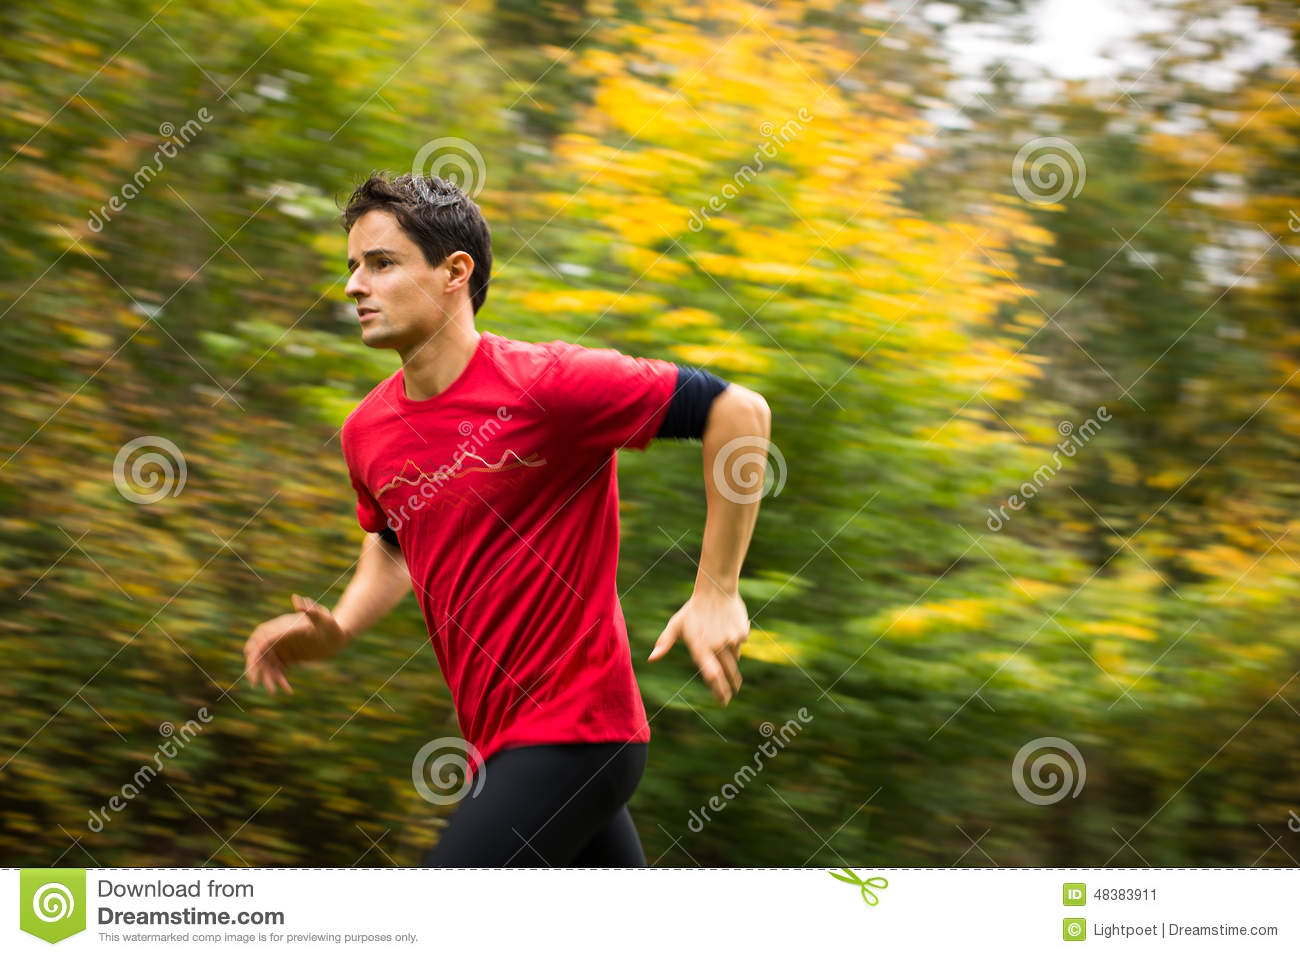 Young man running outdoors in a city park on a fall/autumn day